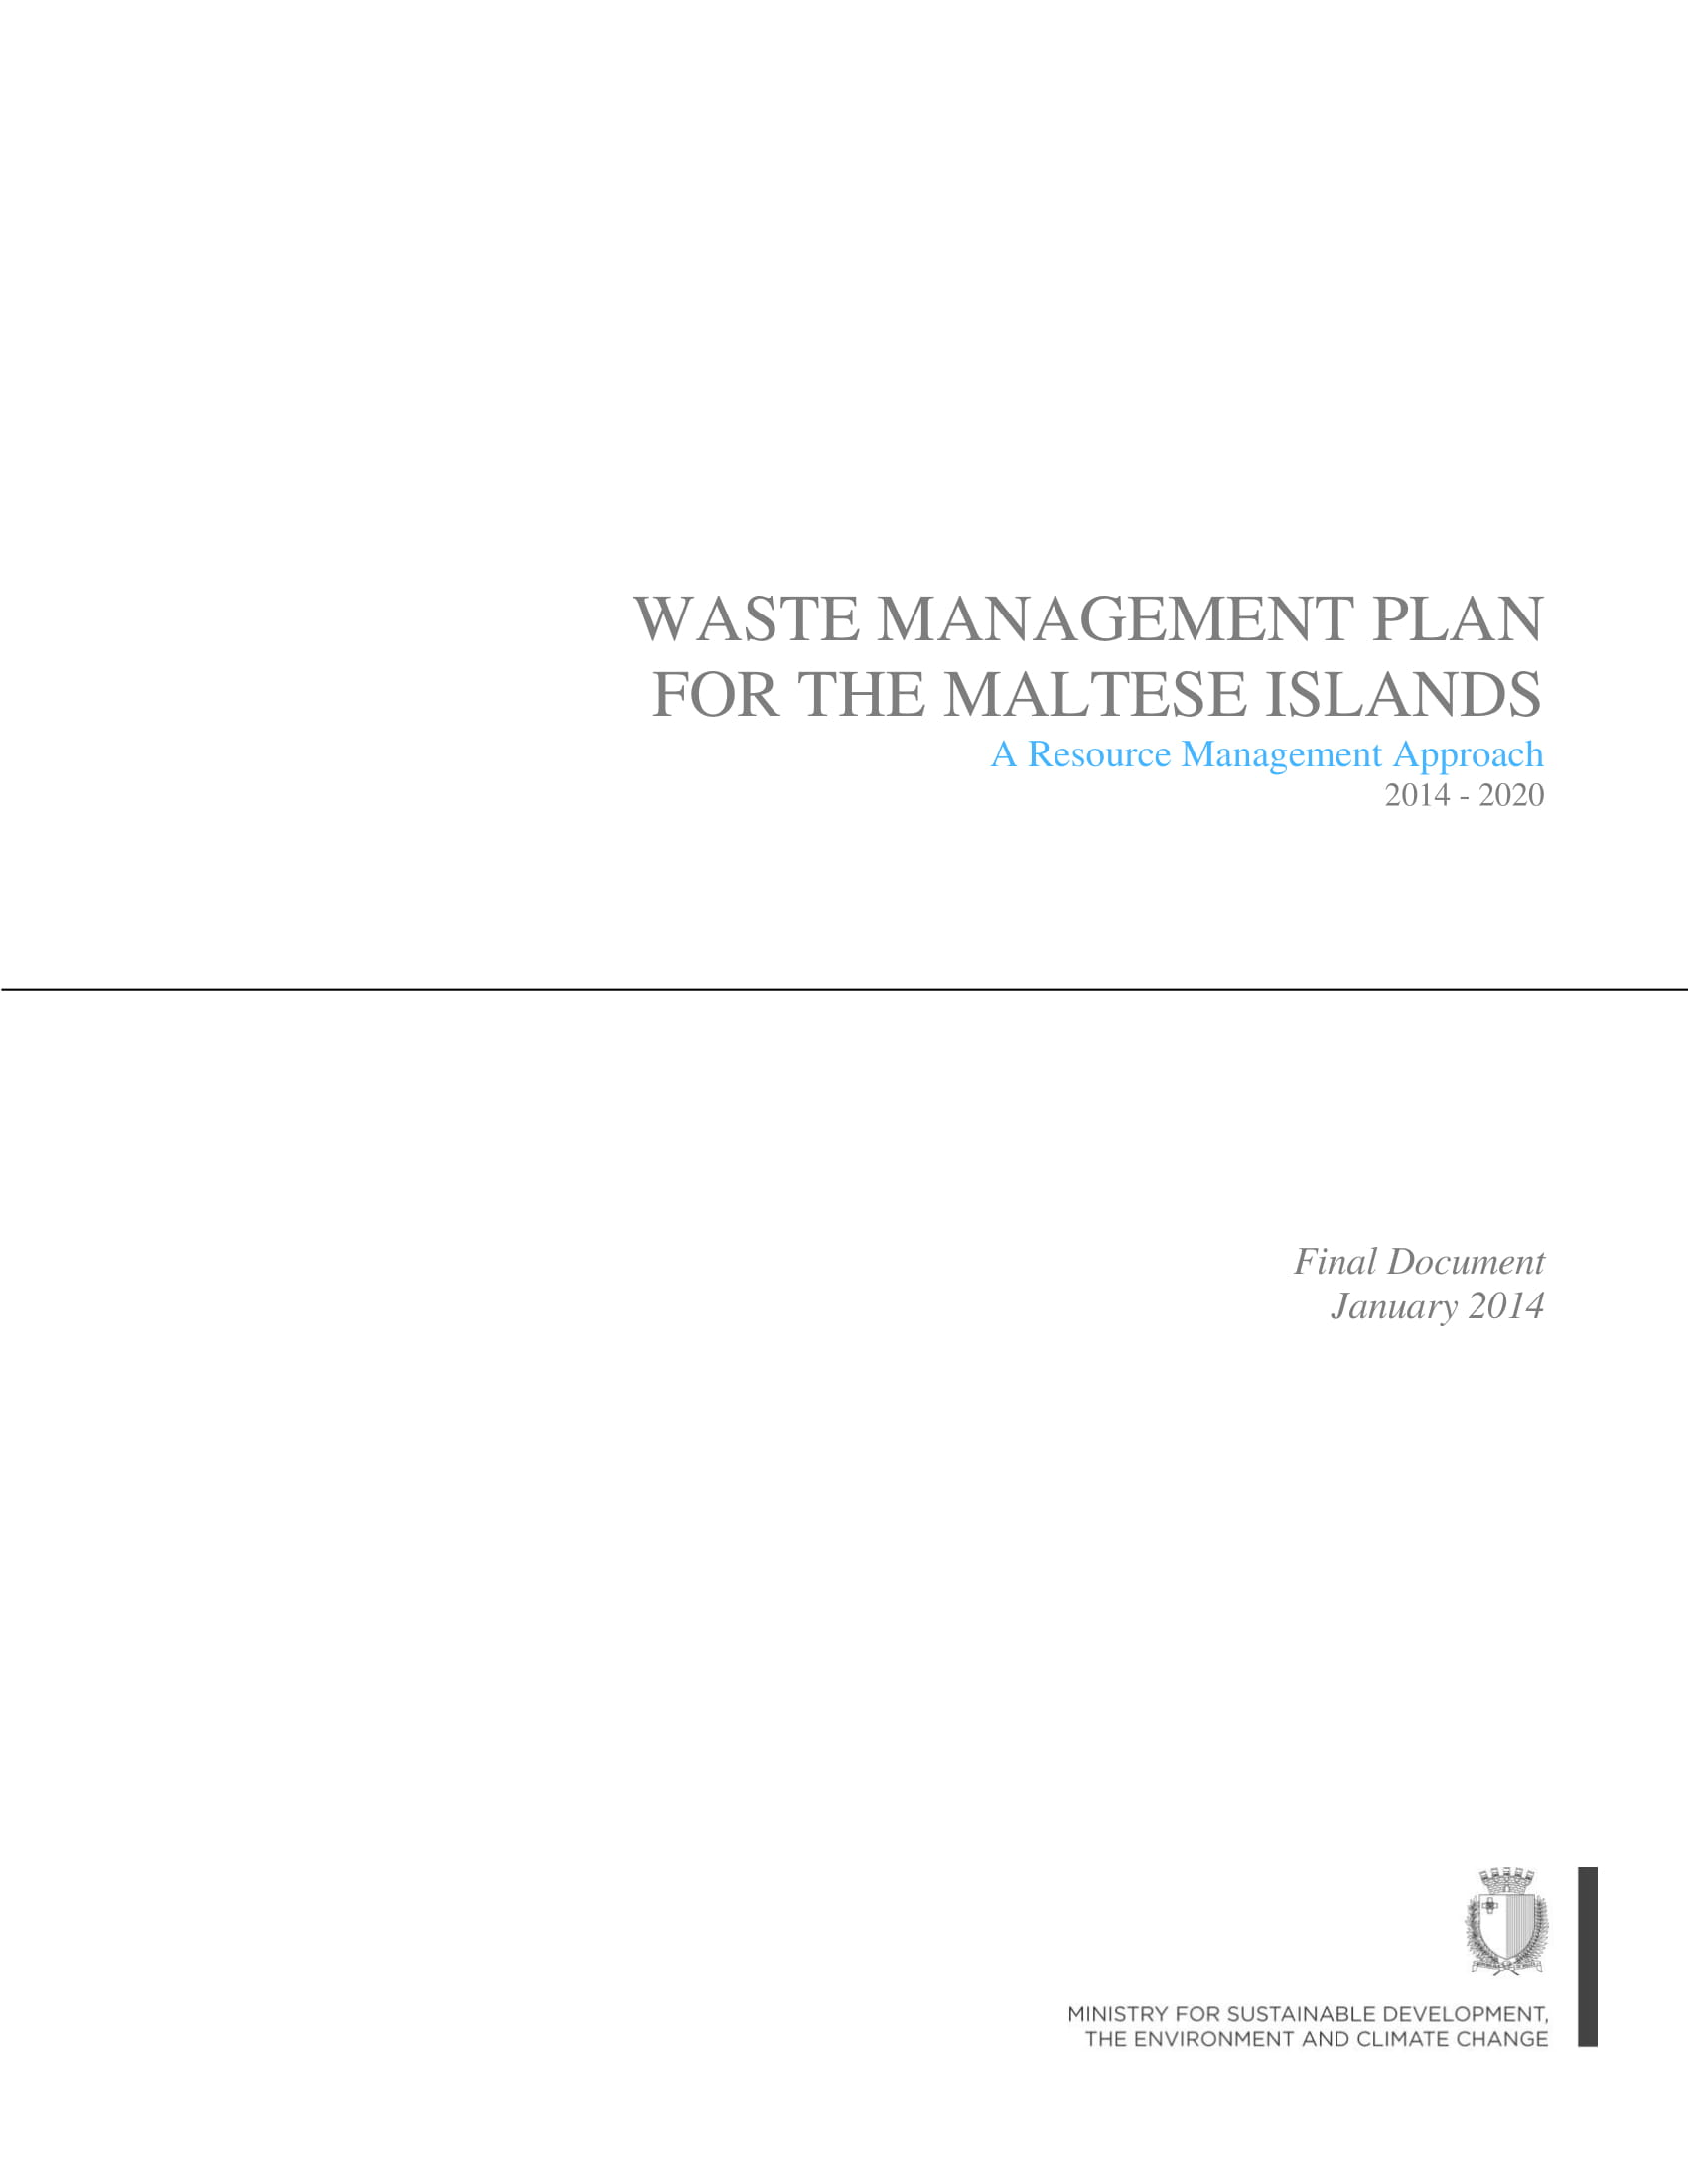 waste management plan 2014 2020 final document 001